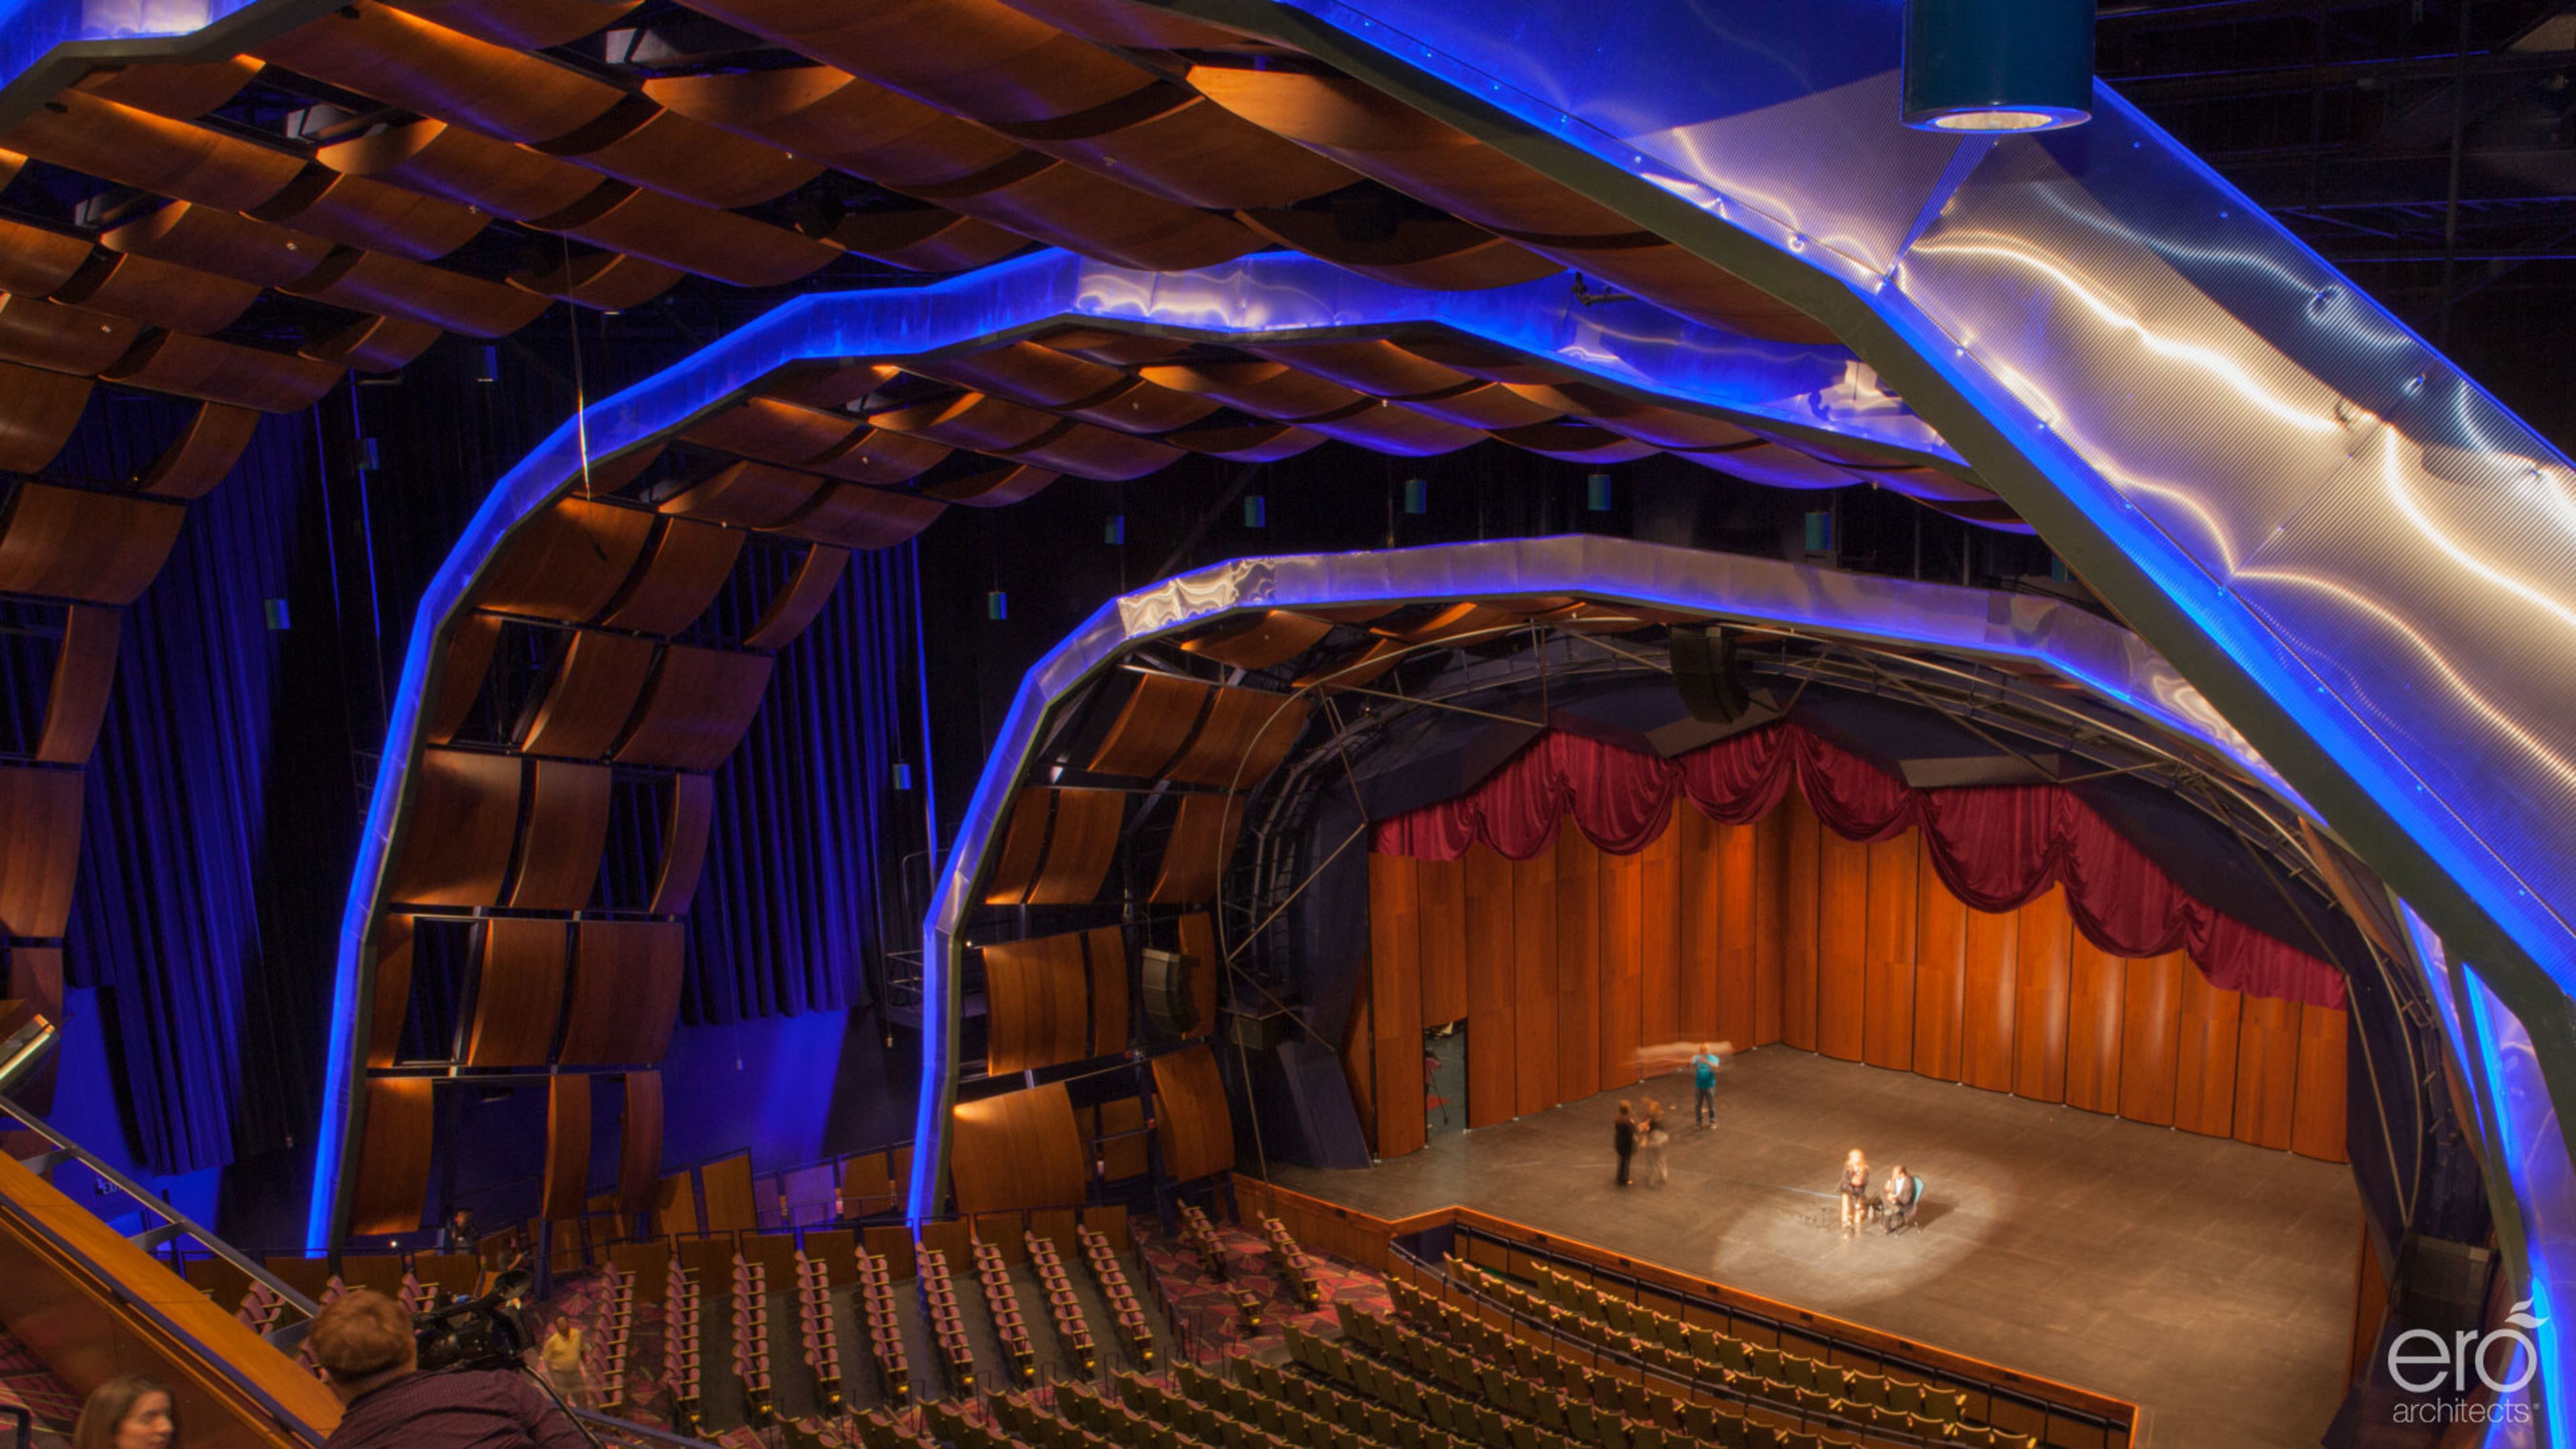 The stage of the McAllen Peforming Arts Center, designed by ERO Architects, amazes the eye. At more than eight stories tall and 1½ times the size of a professional basketball court, the audience feels the immensity of a space that could contain the volume of 20 Olympic-sized swimming pools. Computer programs adjust more than 10,000 square feet of acoustic fabric on the walls and ceiling to accentuate the sounds of the Valley Symphony or Broadway musical troupes. The interior arches are solid pecan wood...